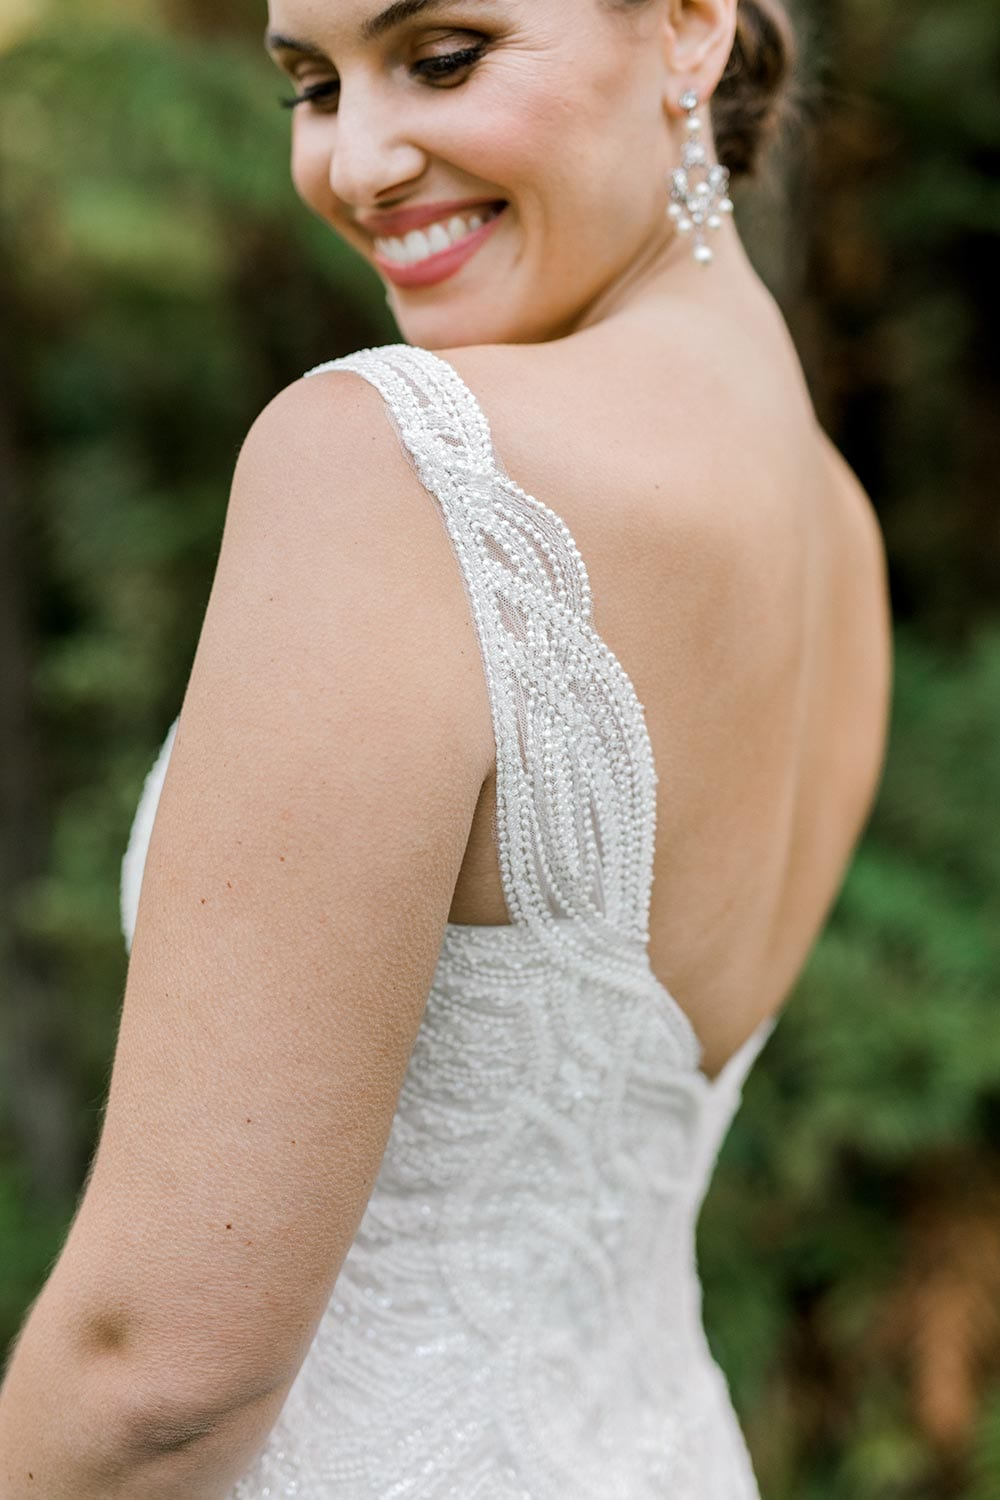 Juliette Wedding Dress from Vinka Design. Flattering stretch fitted lace wedding dress with beautiful ivory rich beading. Structured bodice provides support while remaining effortless to wear. Close up detail of bodice with straps from the side. Photographed at Tui Hills.